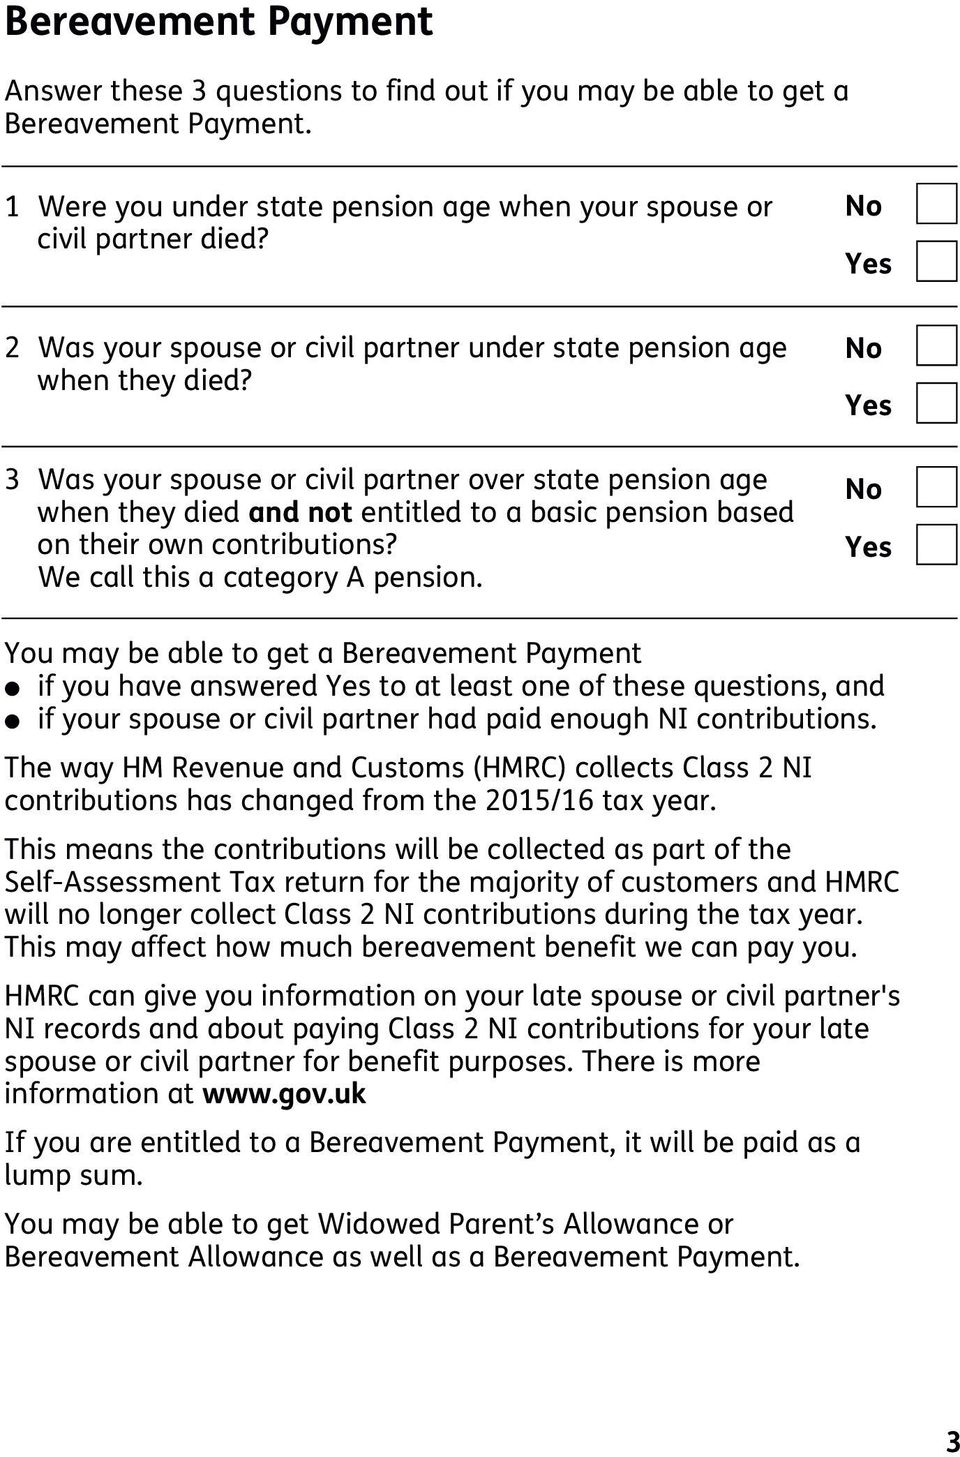 3 Was your spouse or civi partner over state pension age when they died and not entited to a basic pension based on their own contributions? We ca this a category A pension.